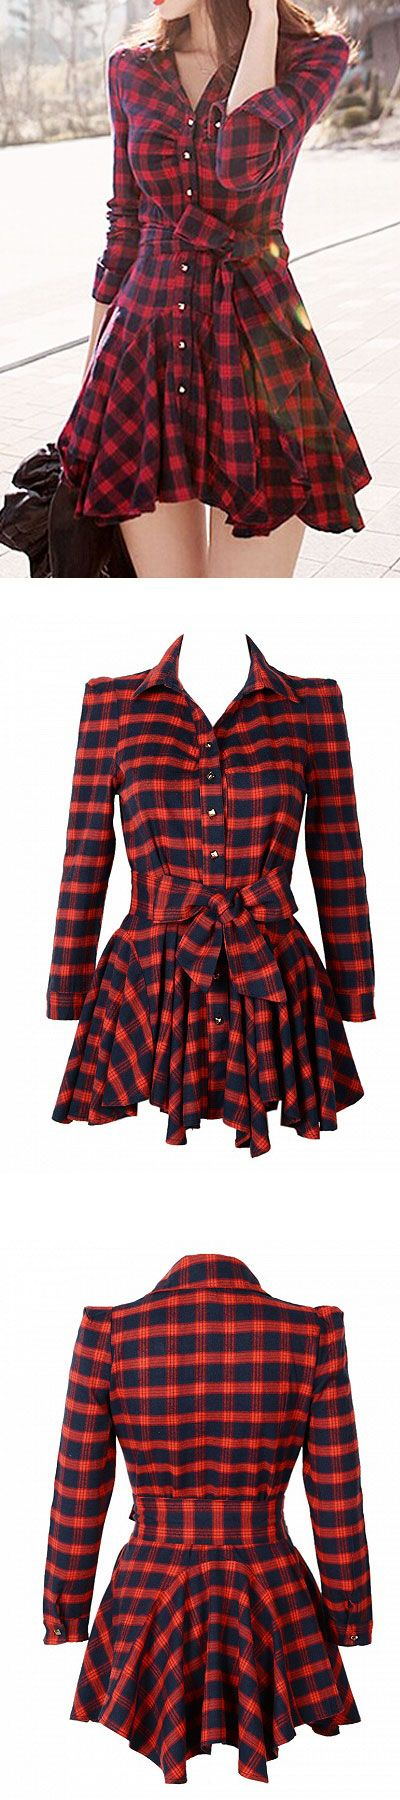 red plaid girlish shirt dress - for teens and young girls - one piece - so easy to get prepared to go out.   Oh, i am so lazy!